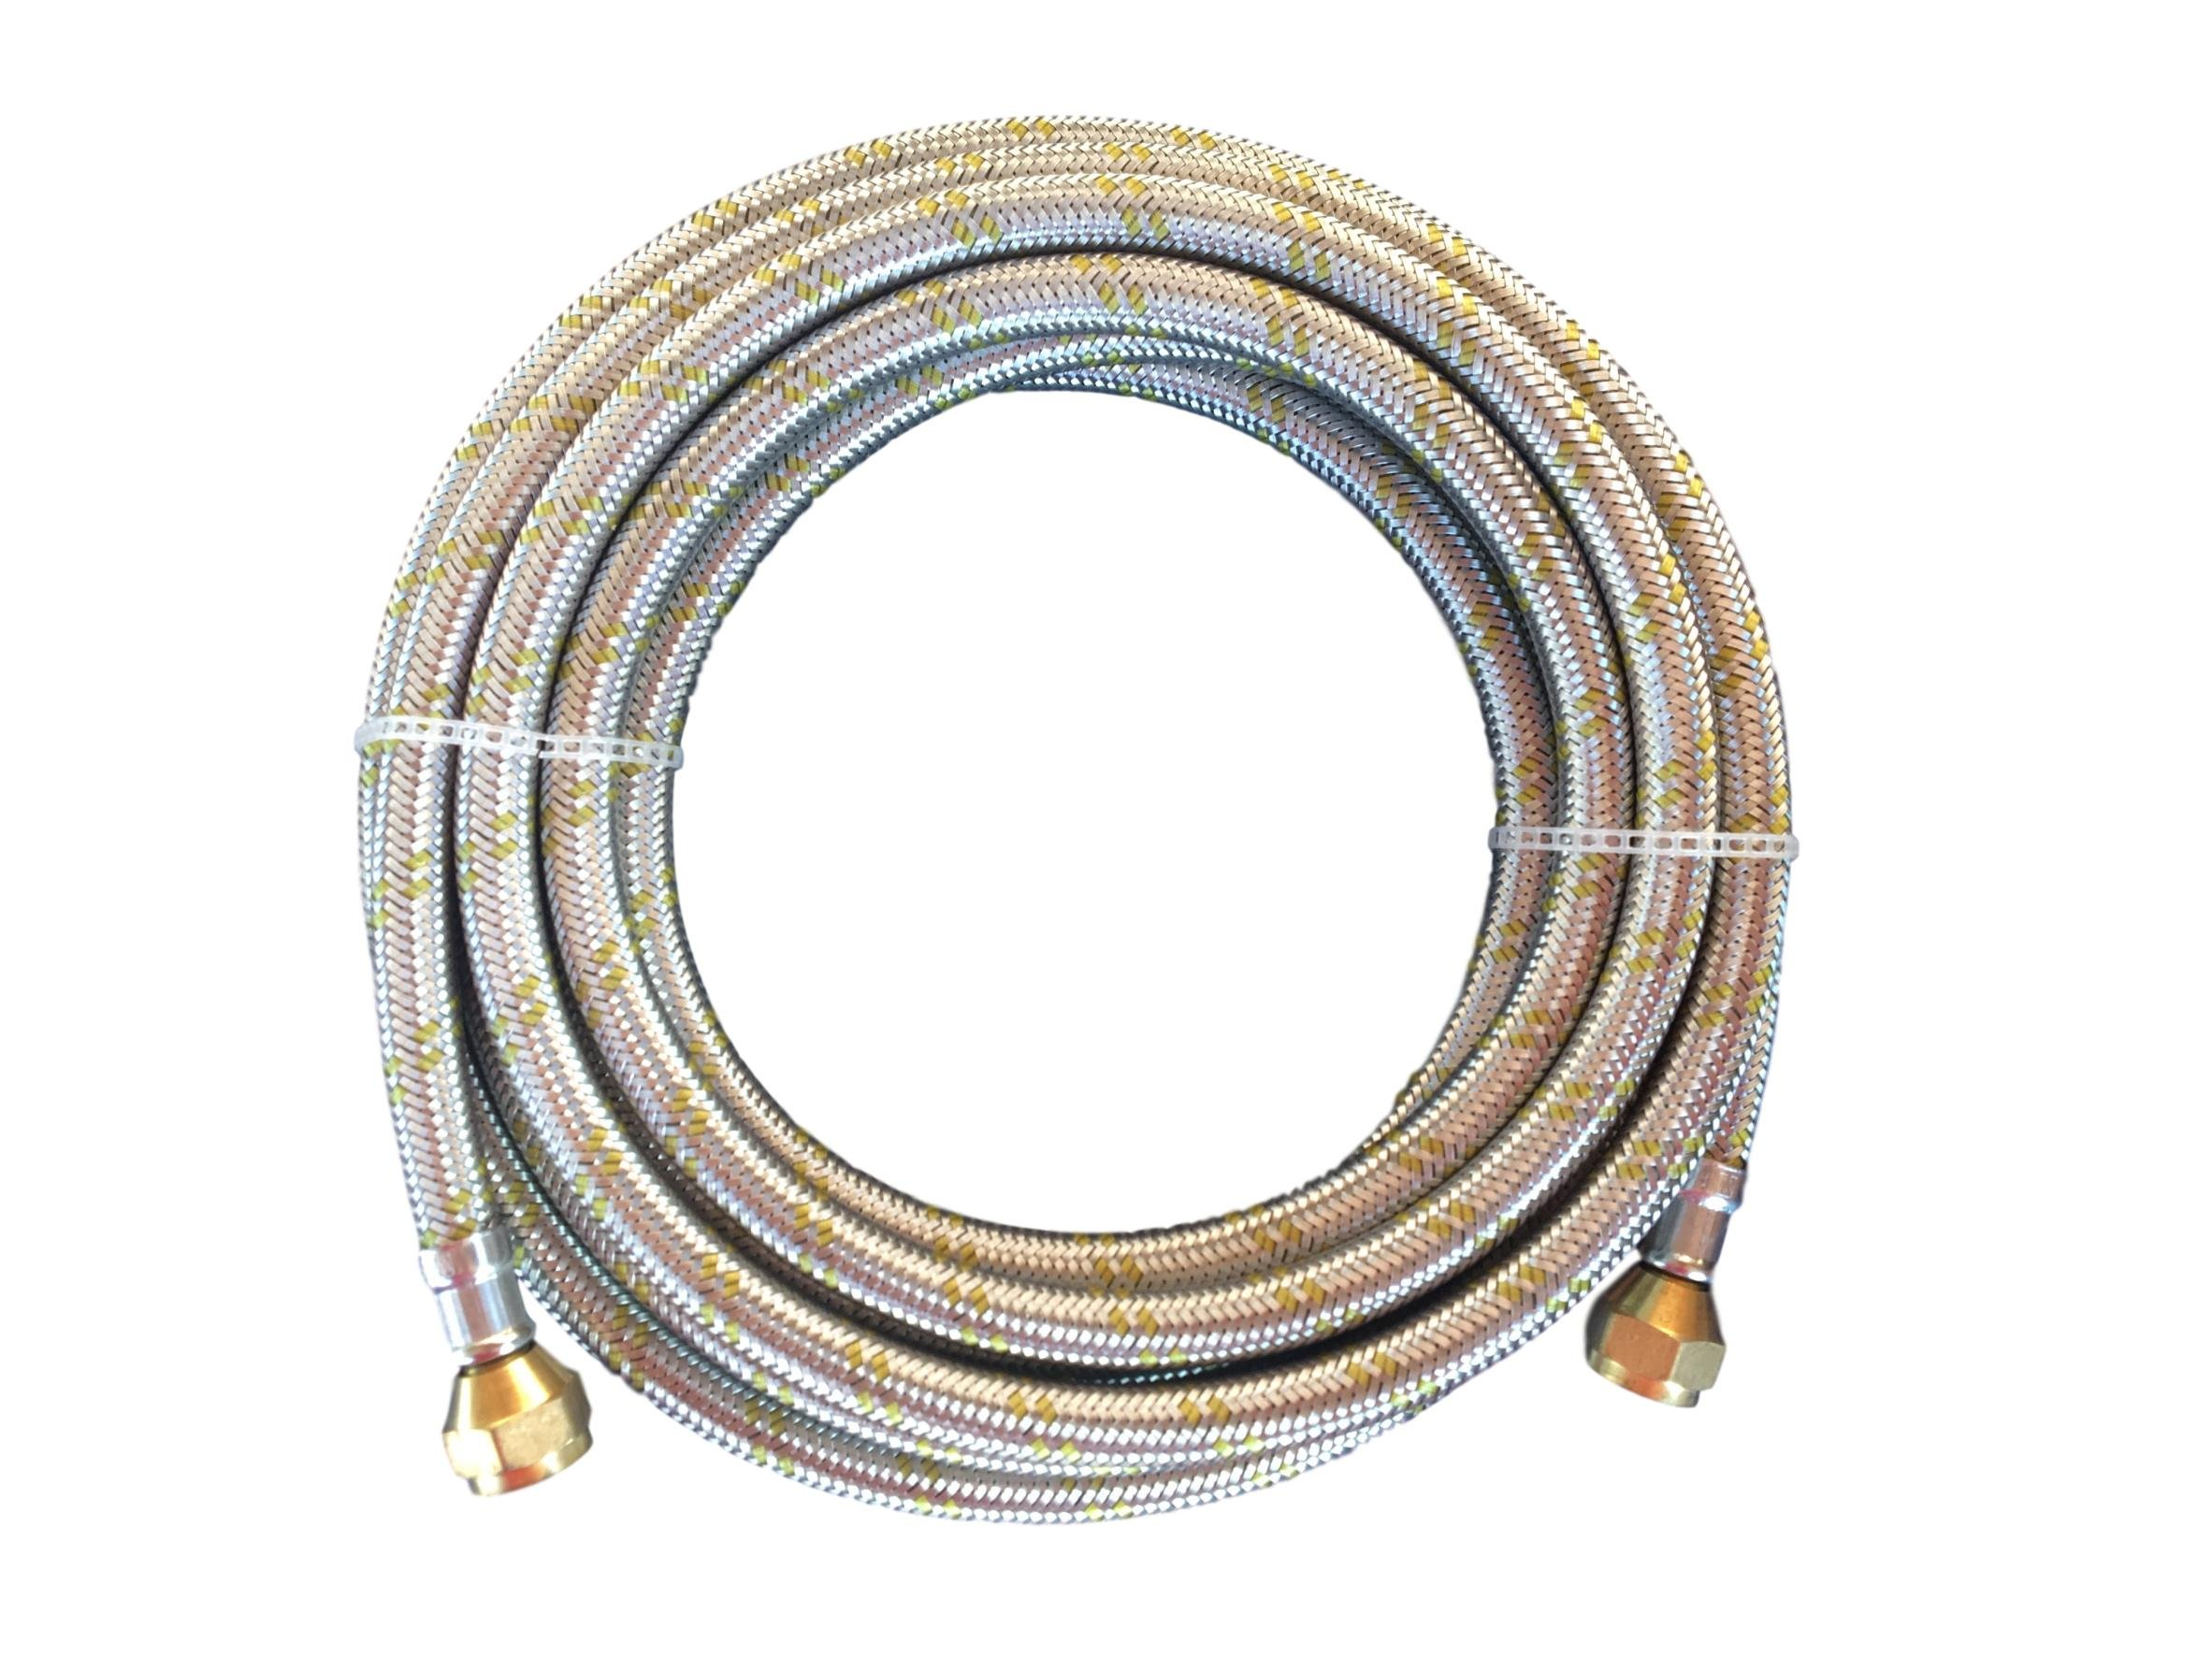 Great Deal Supply LLC Propane, Natural Gas Line 16ft Stainless Steel Braided Hose LP LPG Appliance Parts